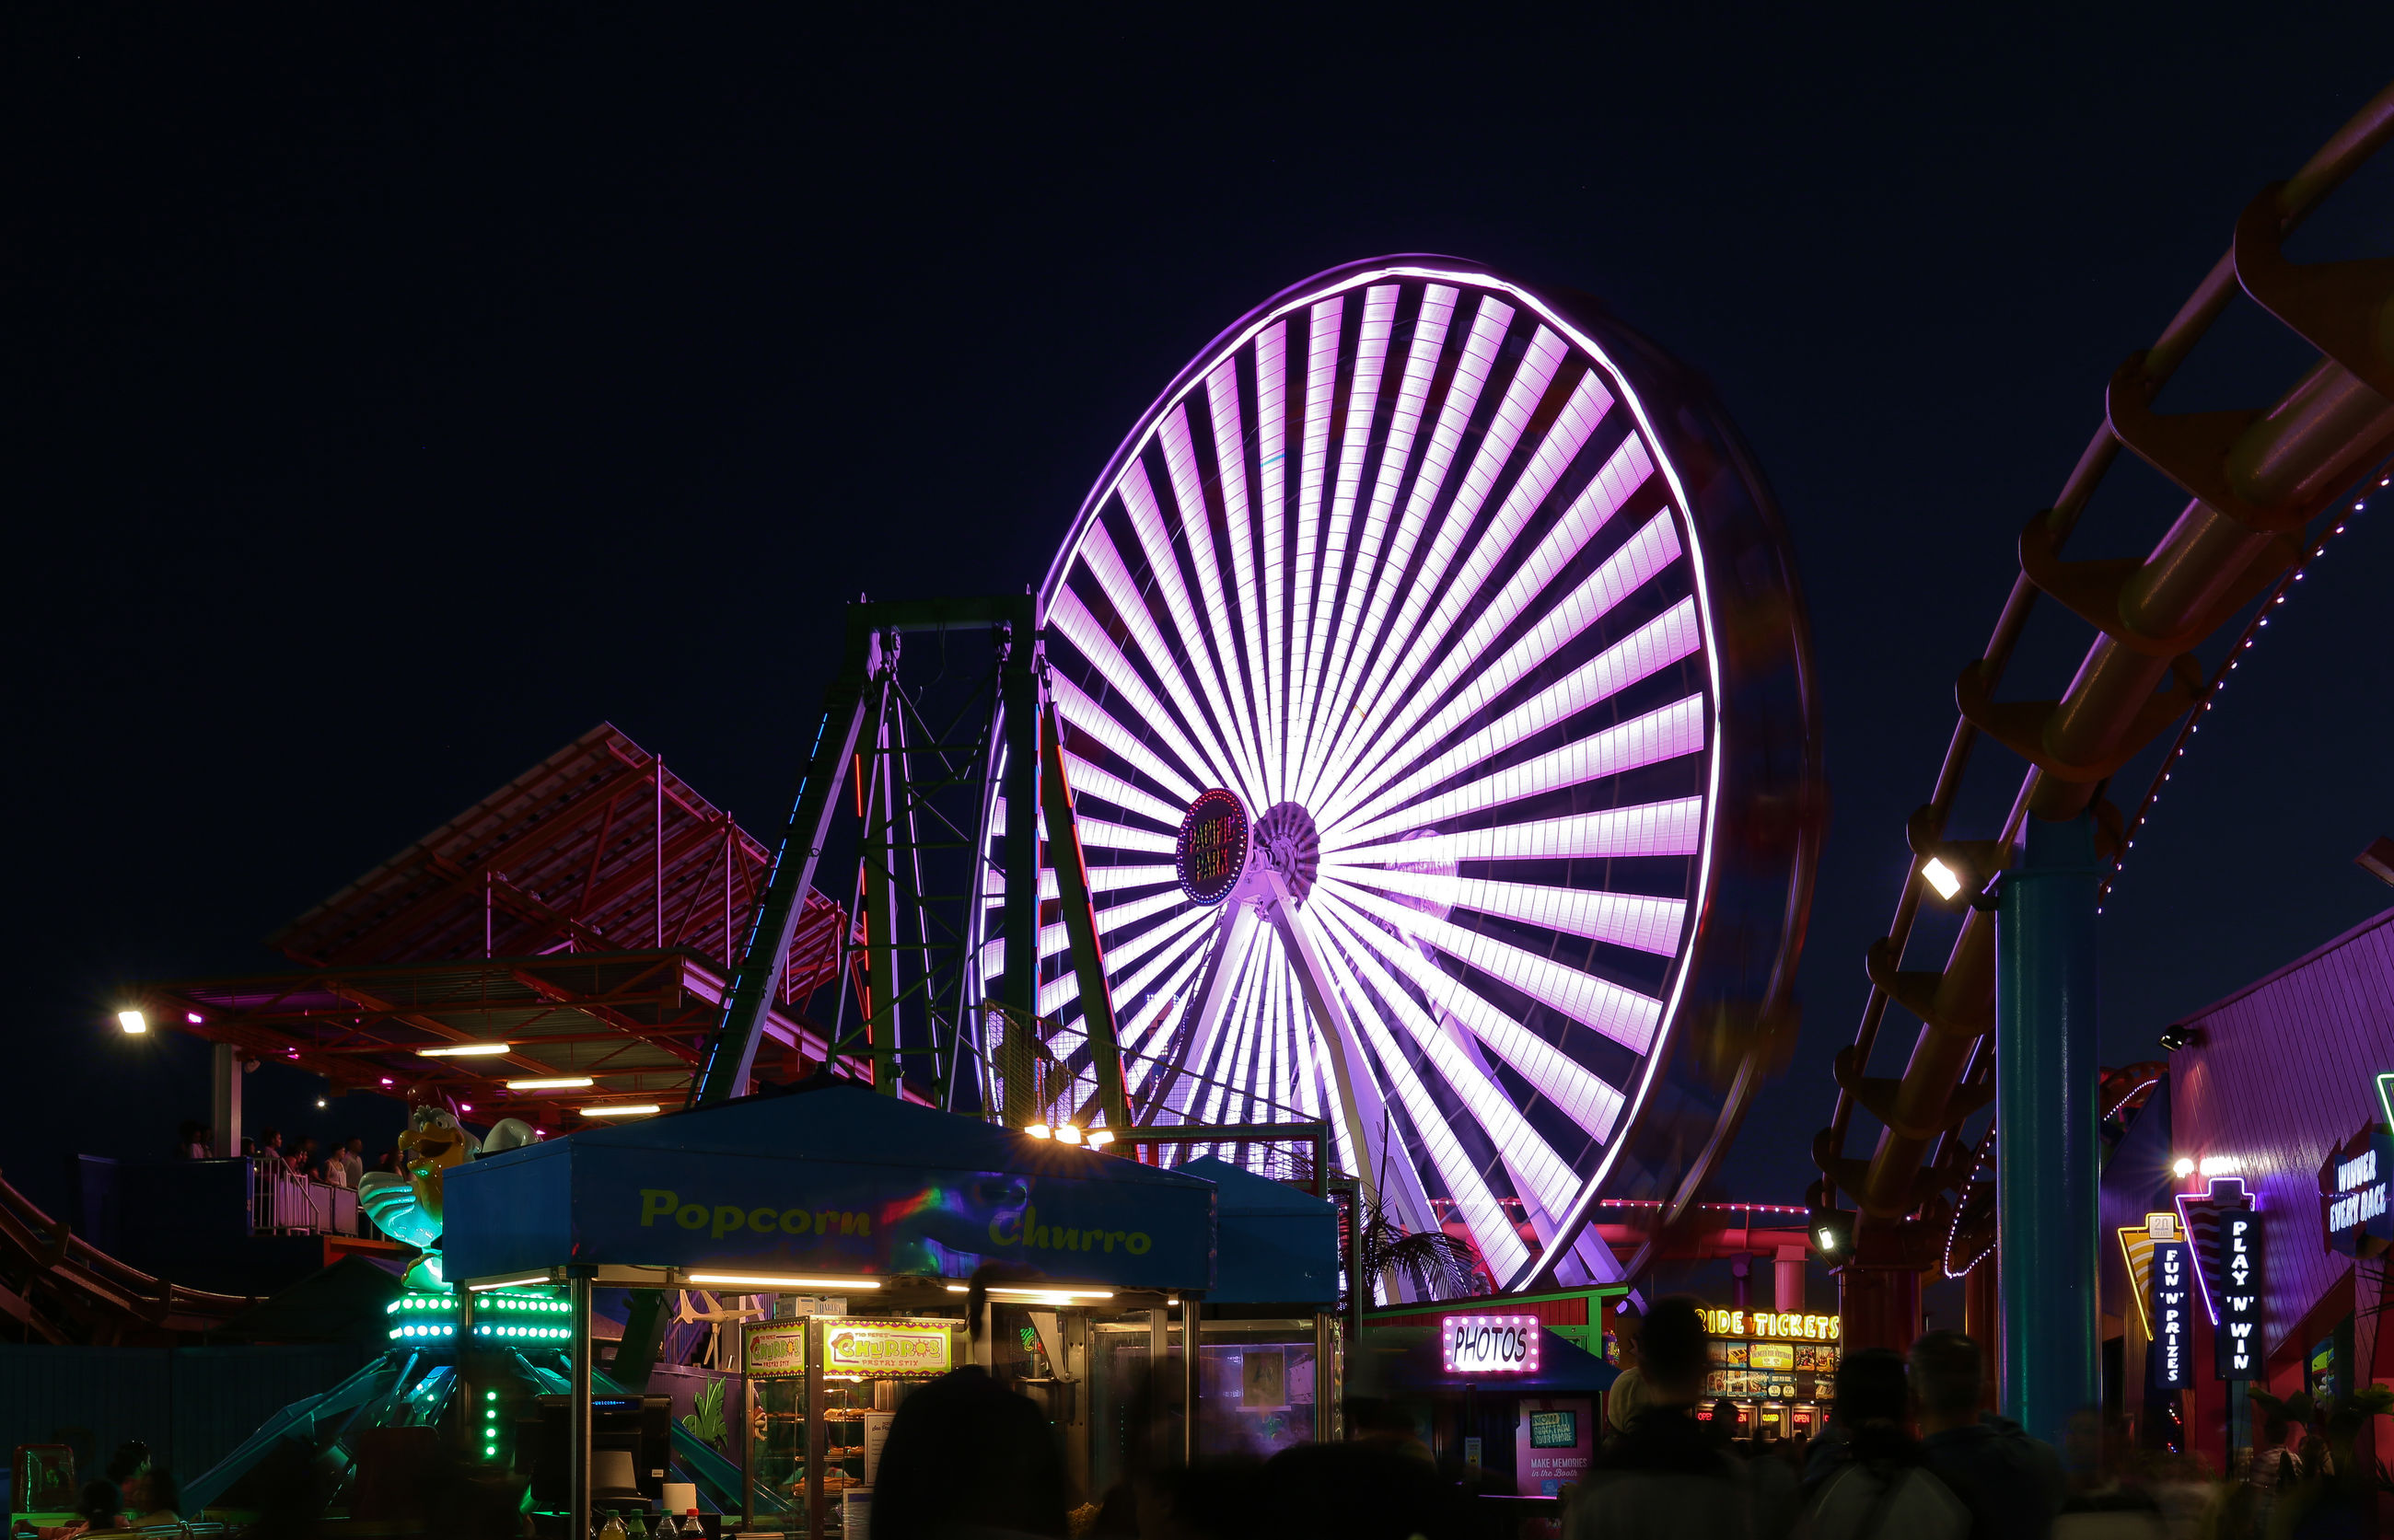 night, illuminated, arts culture and entertainment, leisure activity, large group of people, amusement park, built structure, women, nightlife, lifestyles, outdoors, real people, men, amusement park ride, crowd, multi colored, building exterior, ferris wheel, architecture, group of people, clear sky, sky, city, people